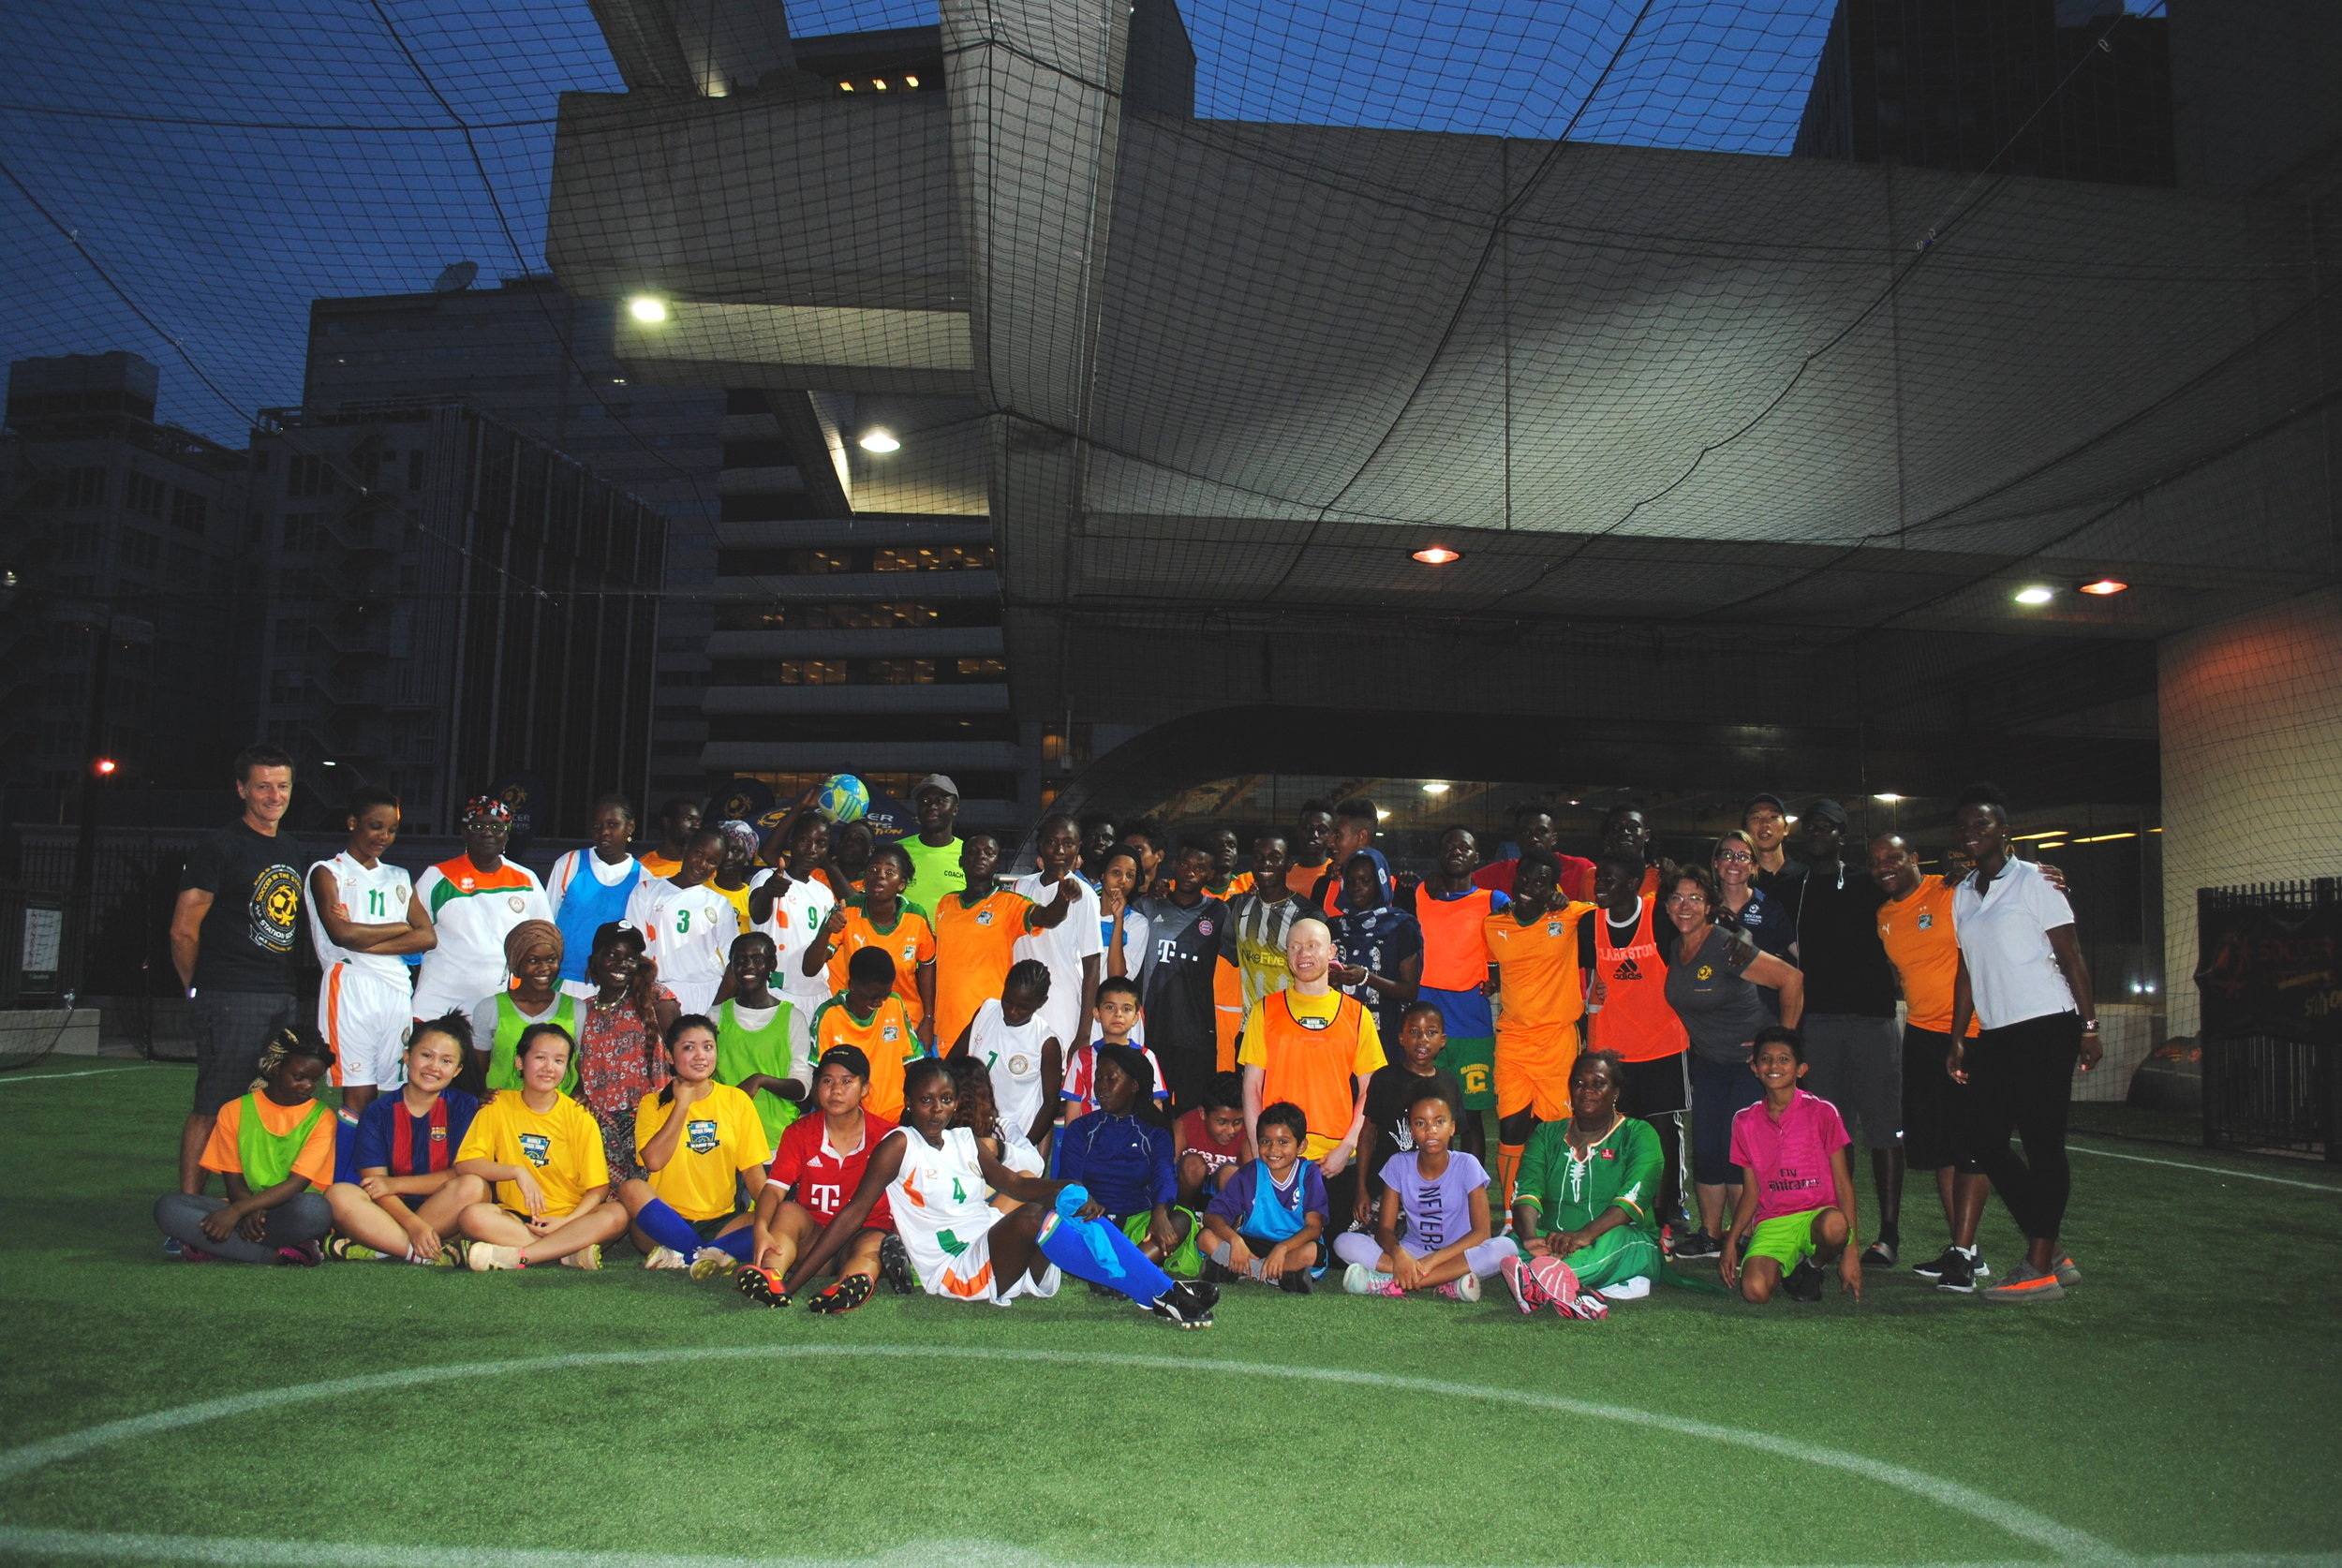 With the support of the State Department and The Audacity Agency, African-American, Latino and Refugee children from metro Atlanta participate in an exchange at Station Soccer with children from  Cote d'Ivoire and Niger